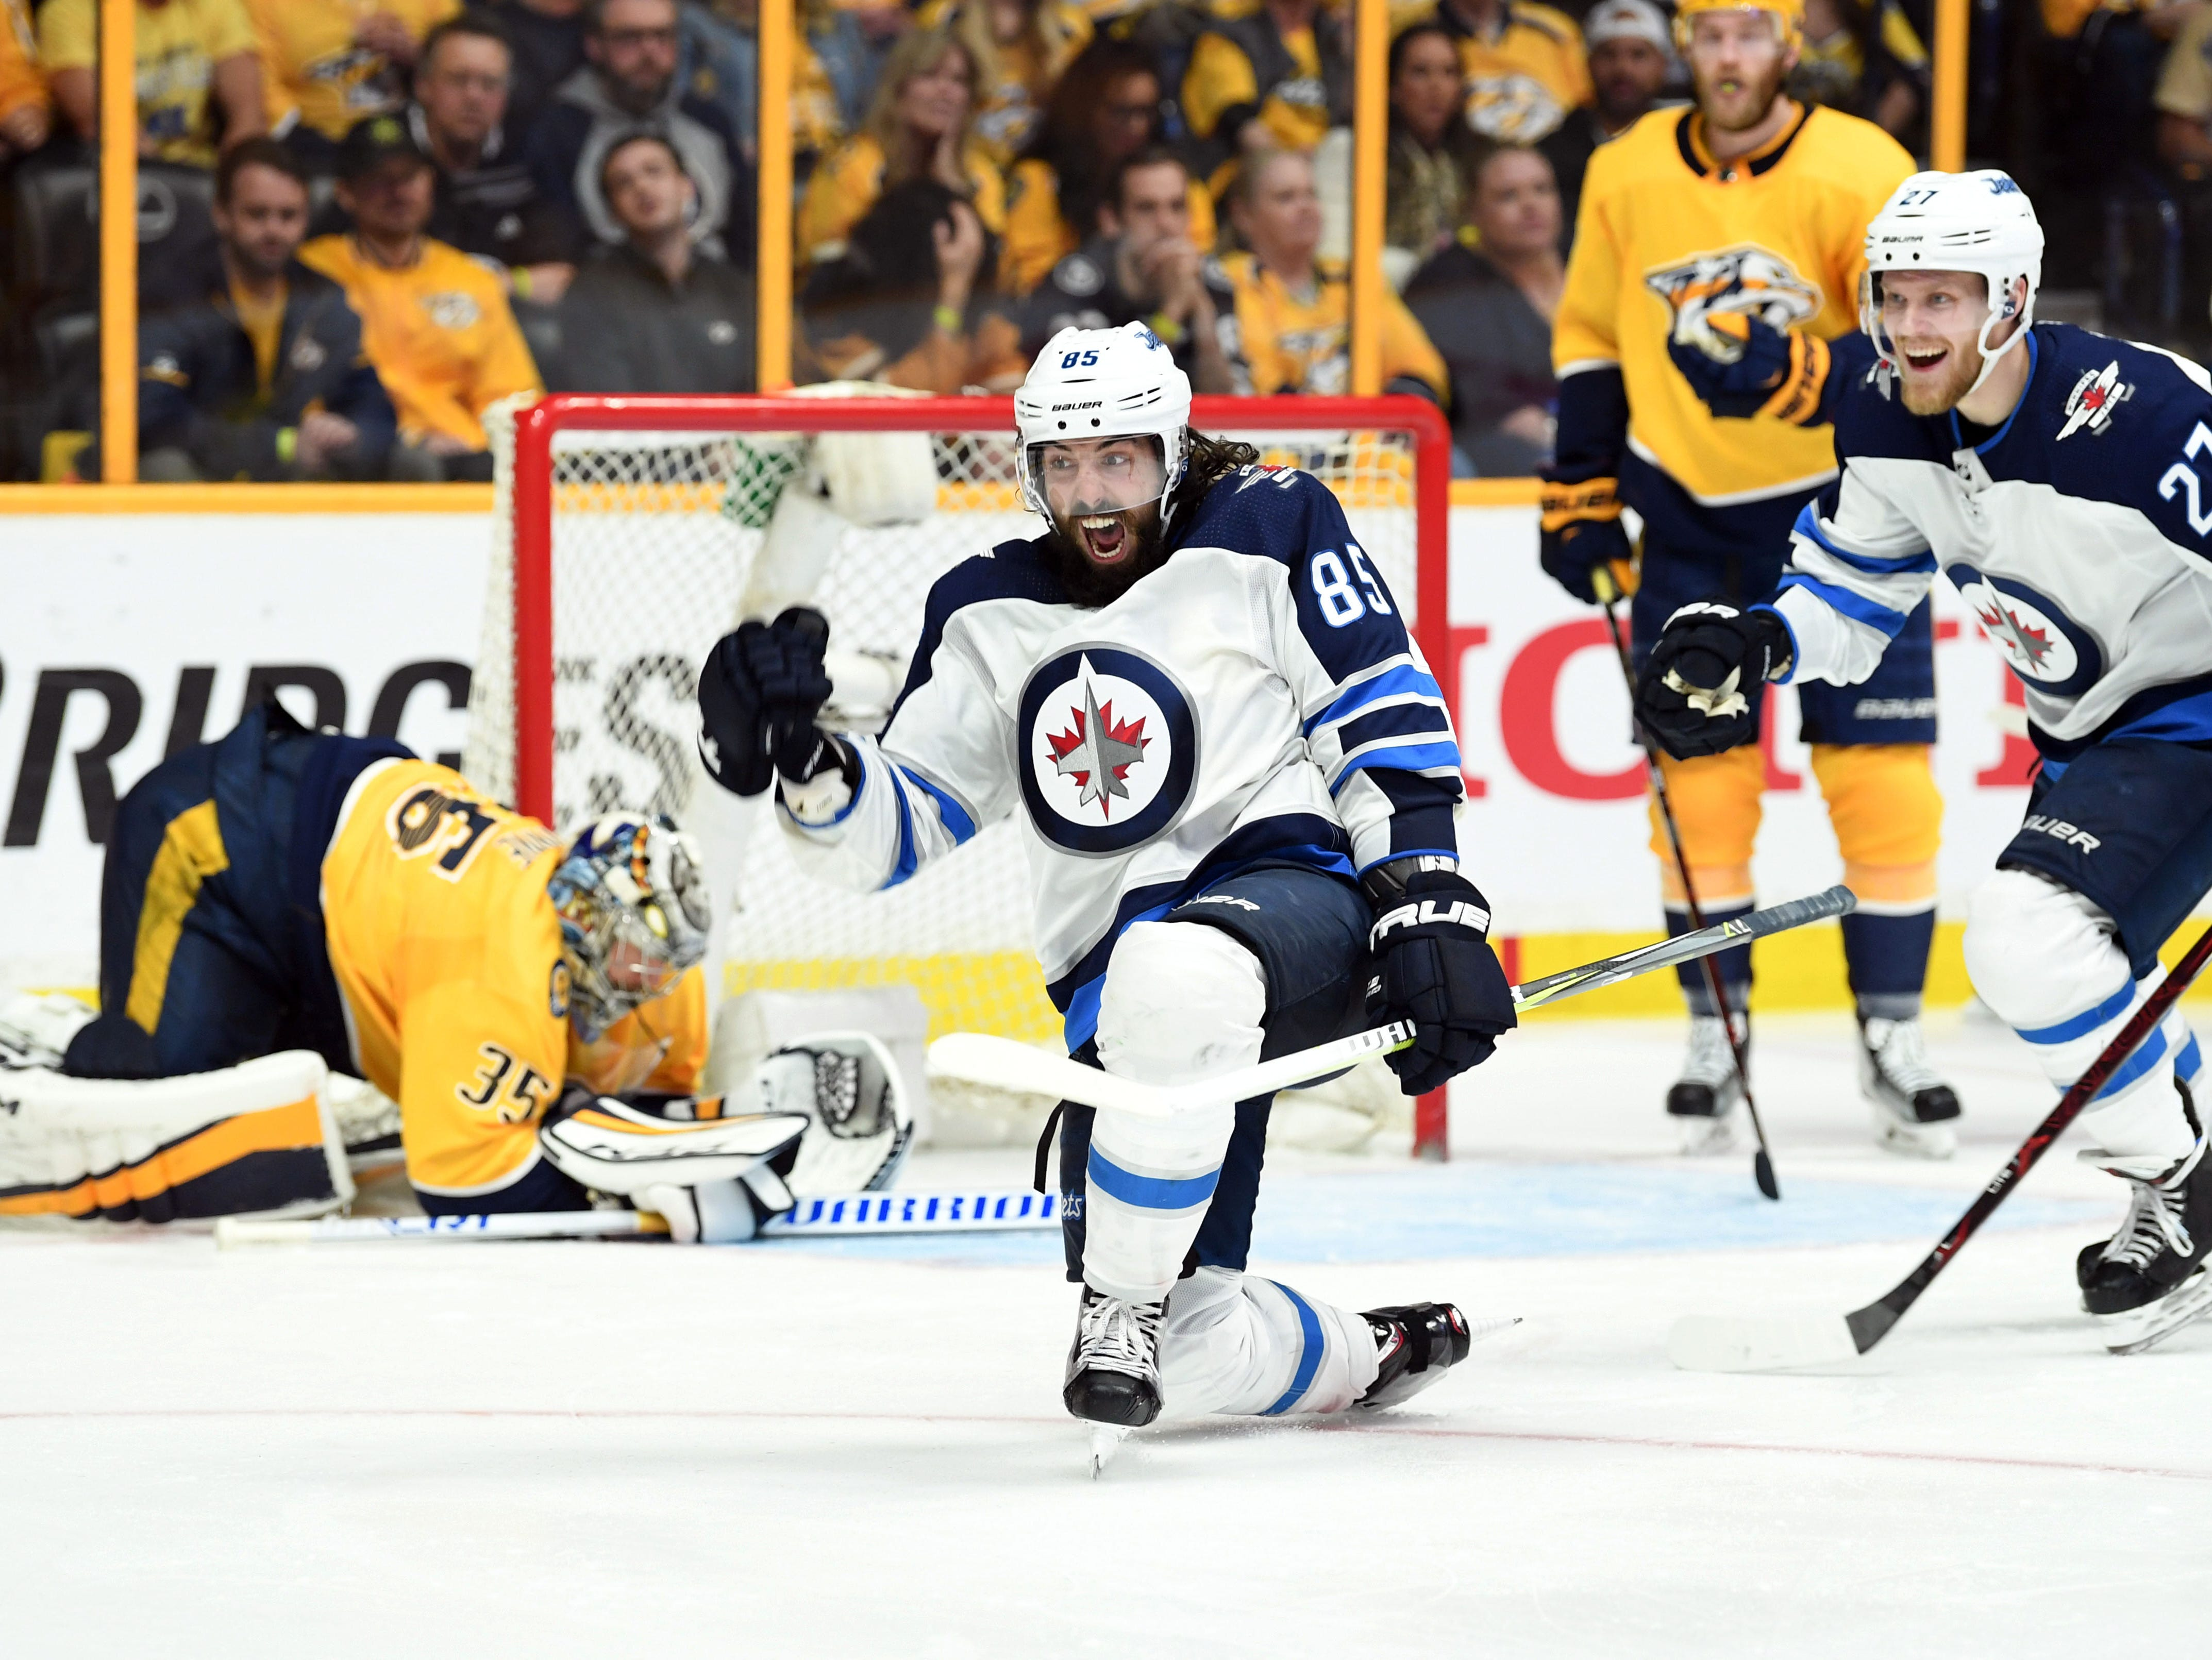 May 5: Winnipeg Jets center Mathieu Perreault (85) celebrates after scoring past Nashville Predators goalie Pekka Rinne (35) during the third period of Game 5 in their second-round series.